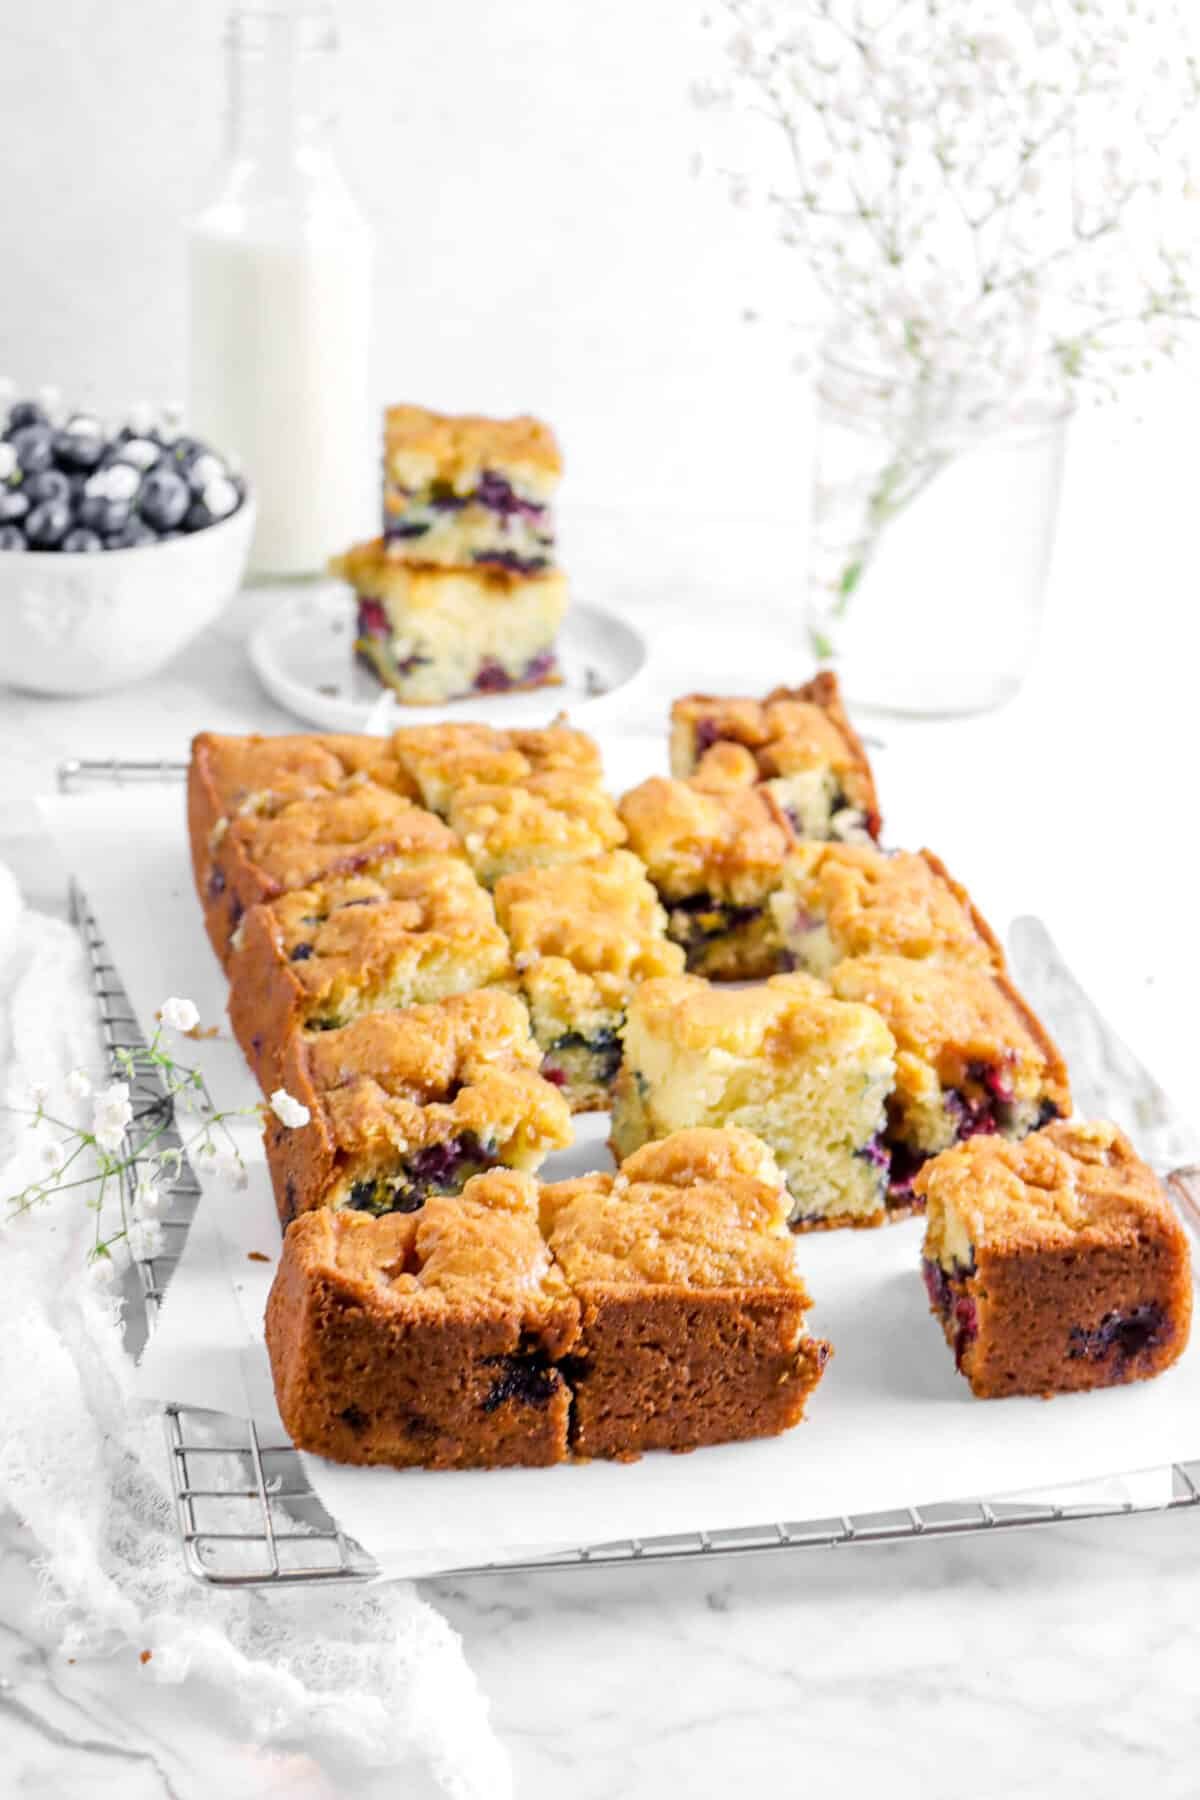 blueberry buckle sliced on wire cooling rack with flowers, two slices of cake, glass of milk, and bowl of blueberries behind